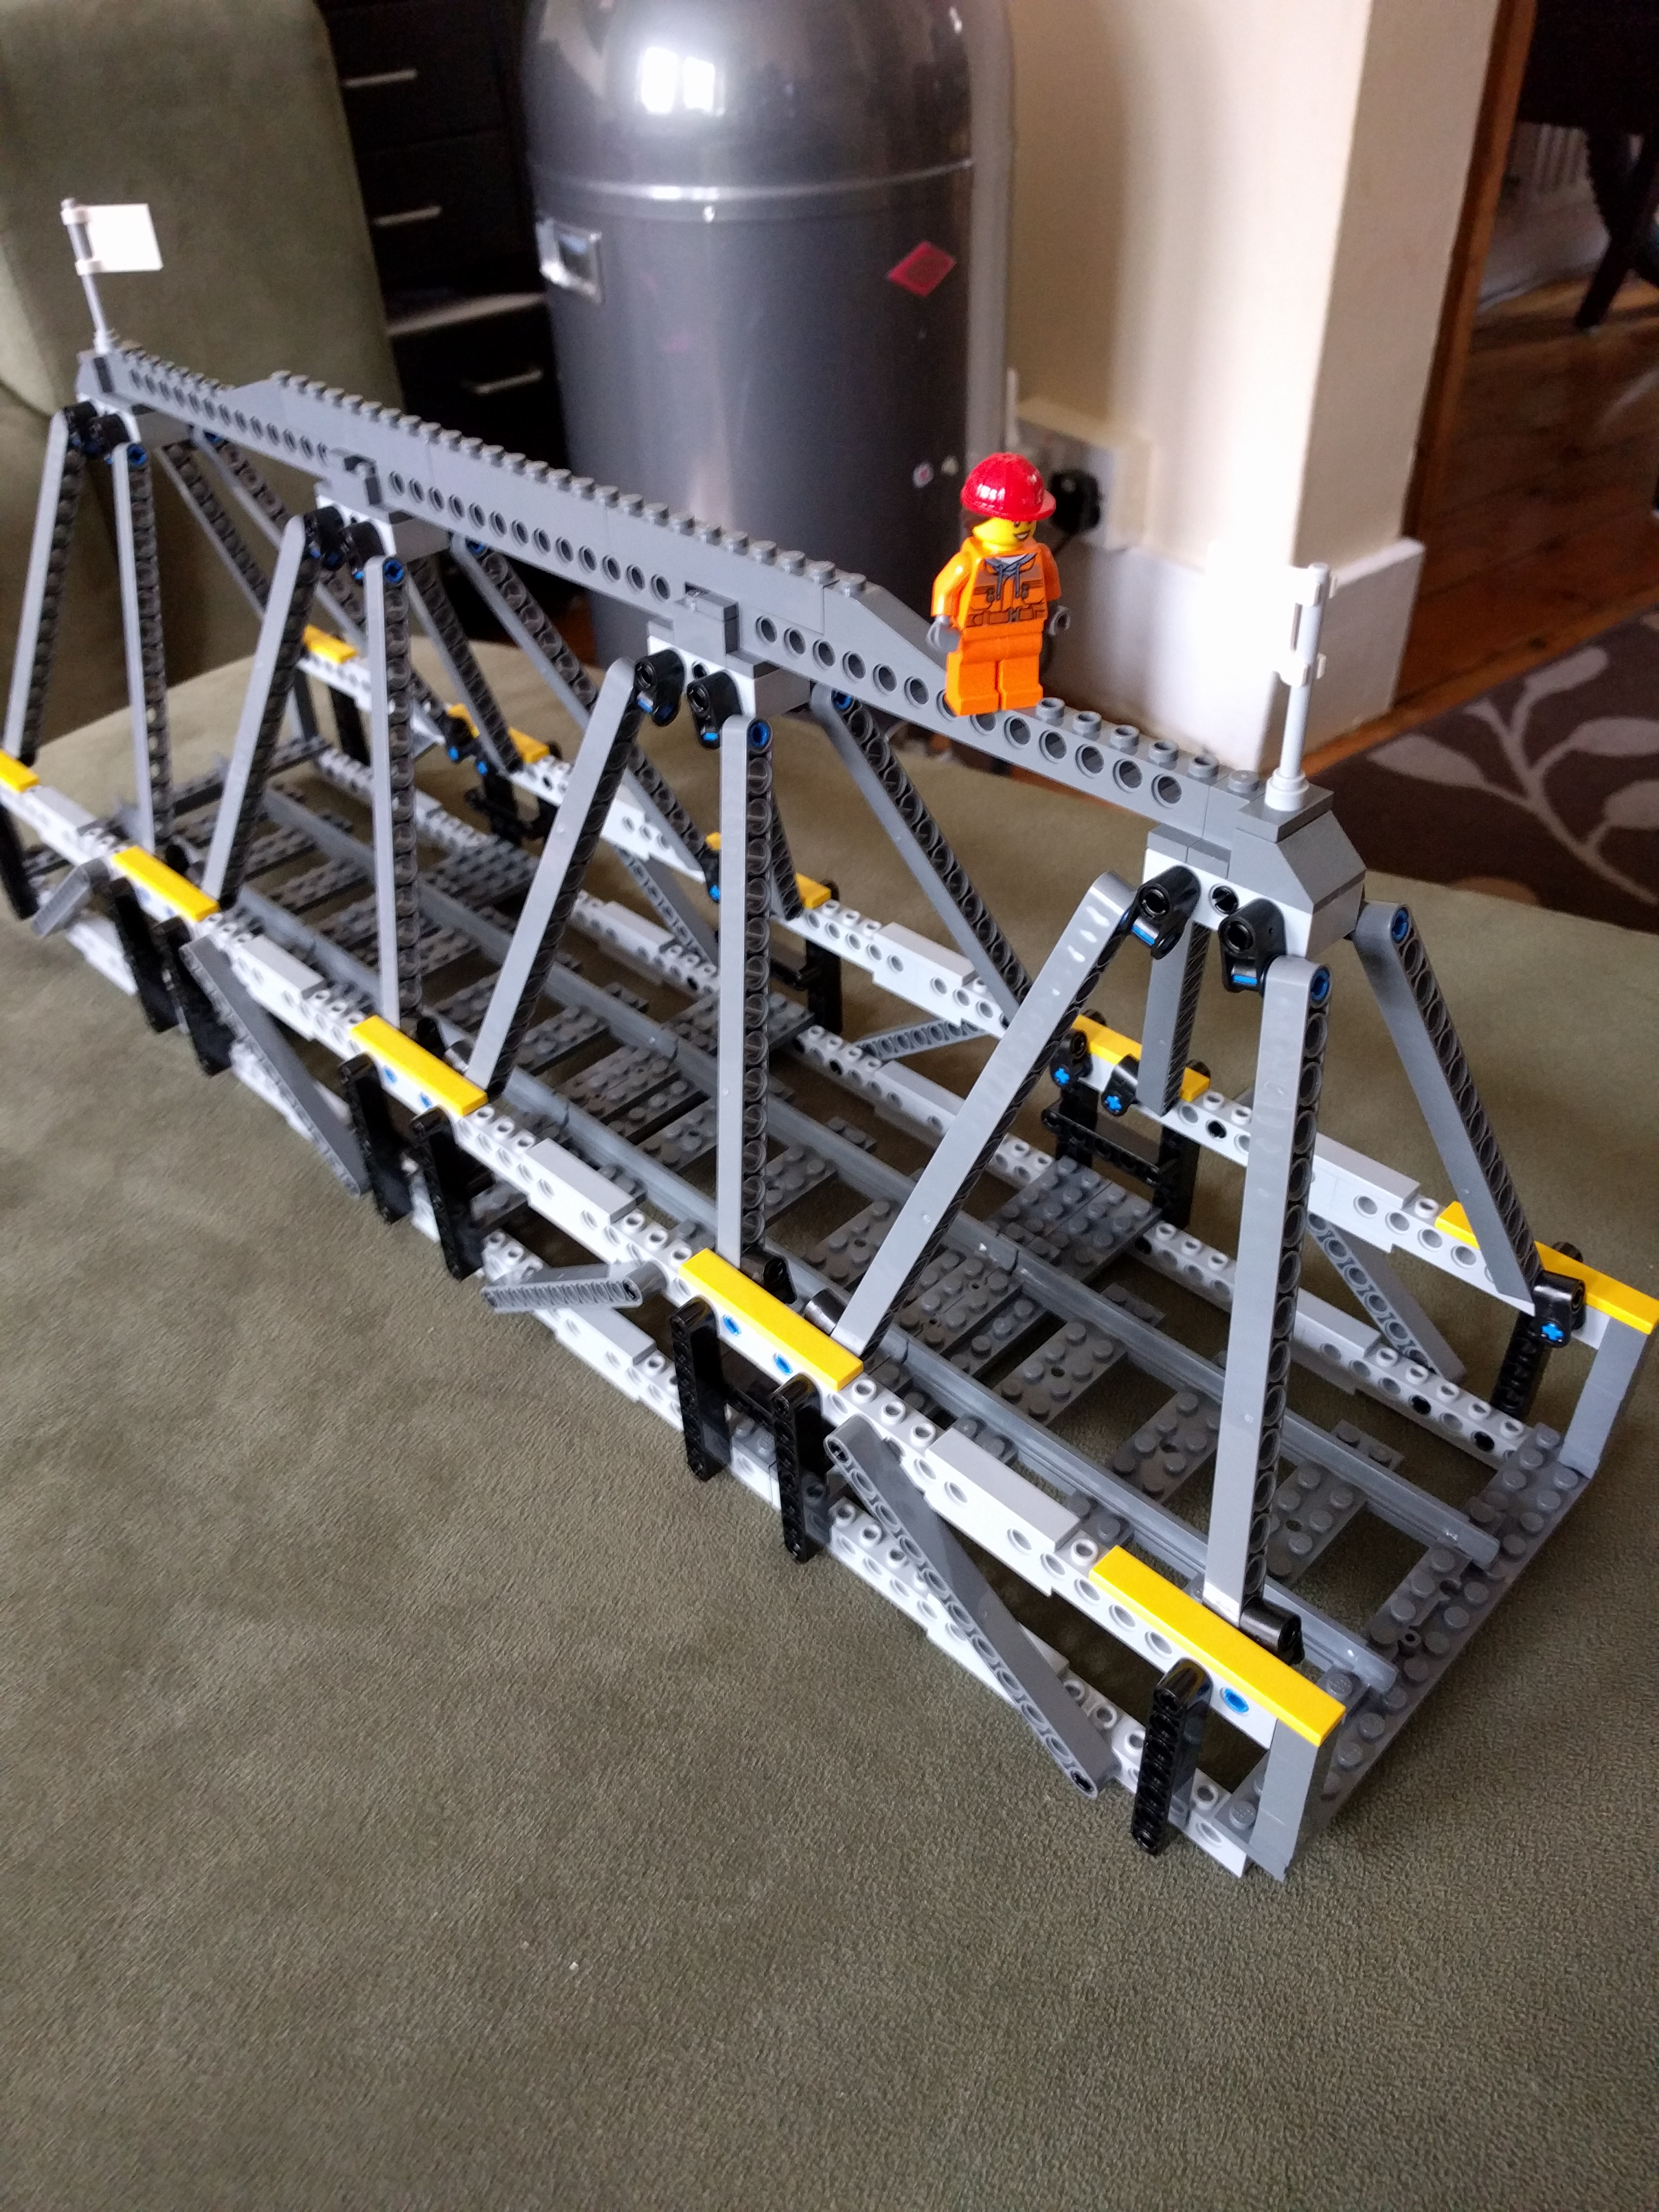 how to incline lego train tracks